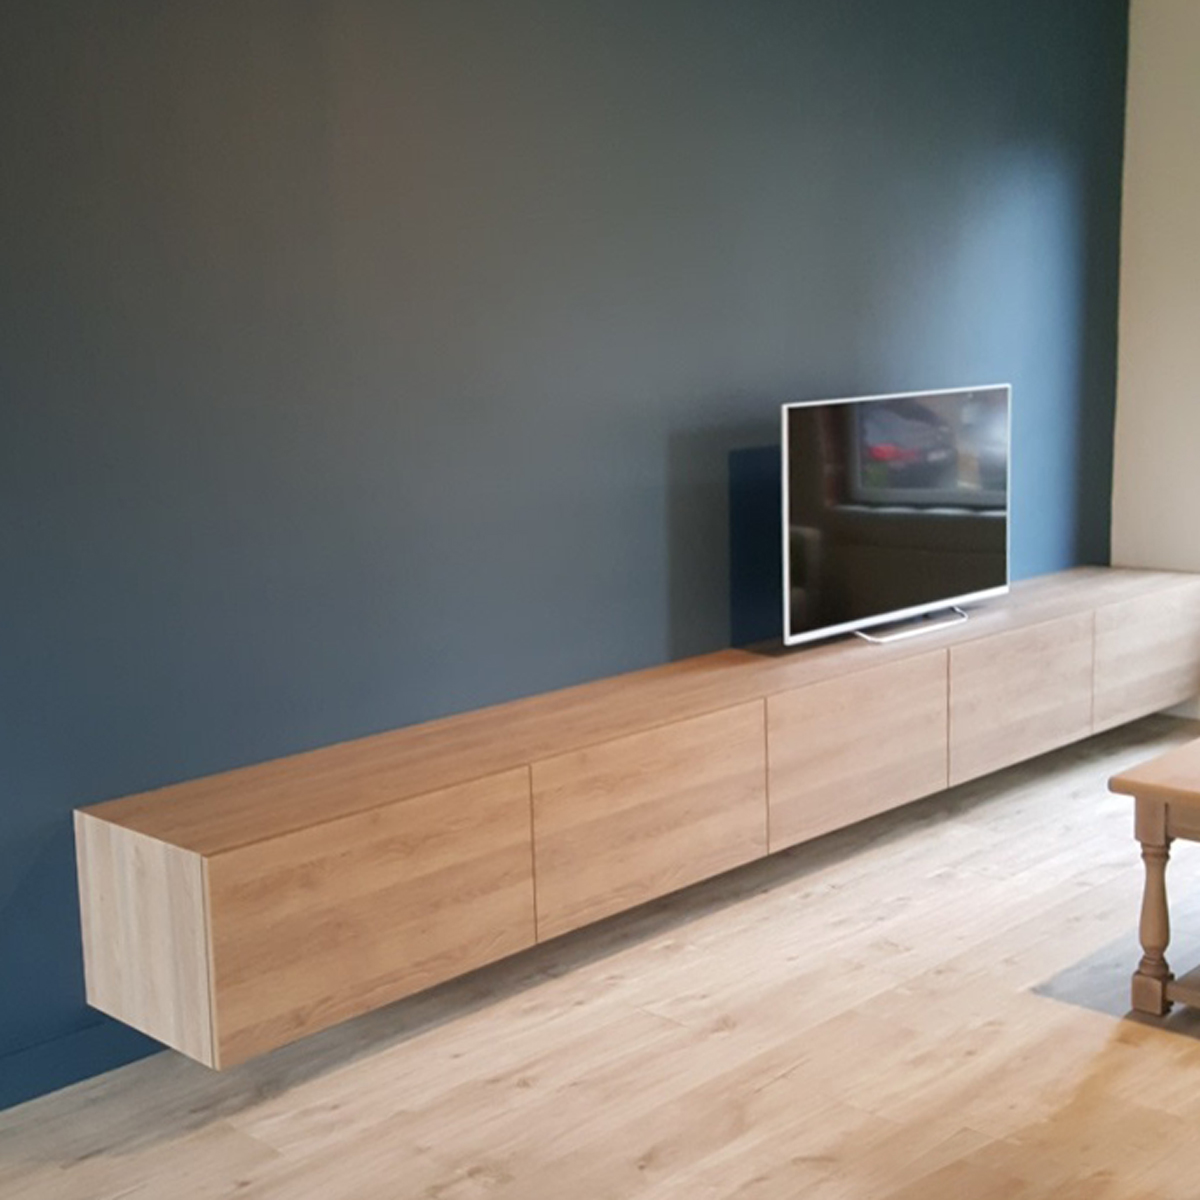 Tv Kast Zwevend.Zwevende Tv Kast Fabulous Sonorous Ed Ts Zwevend Tv Meubel With